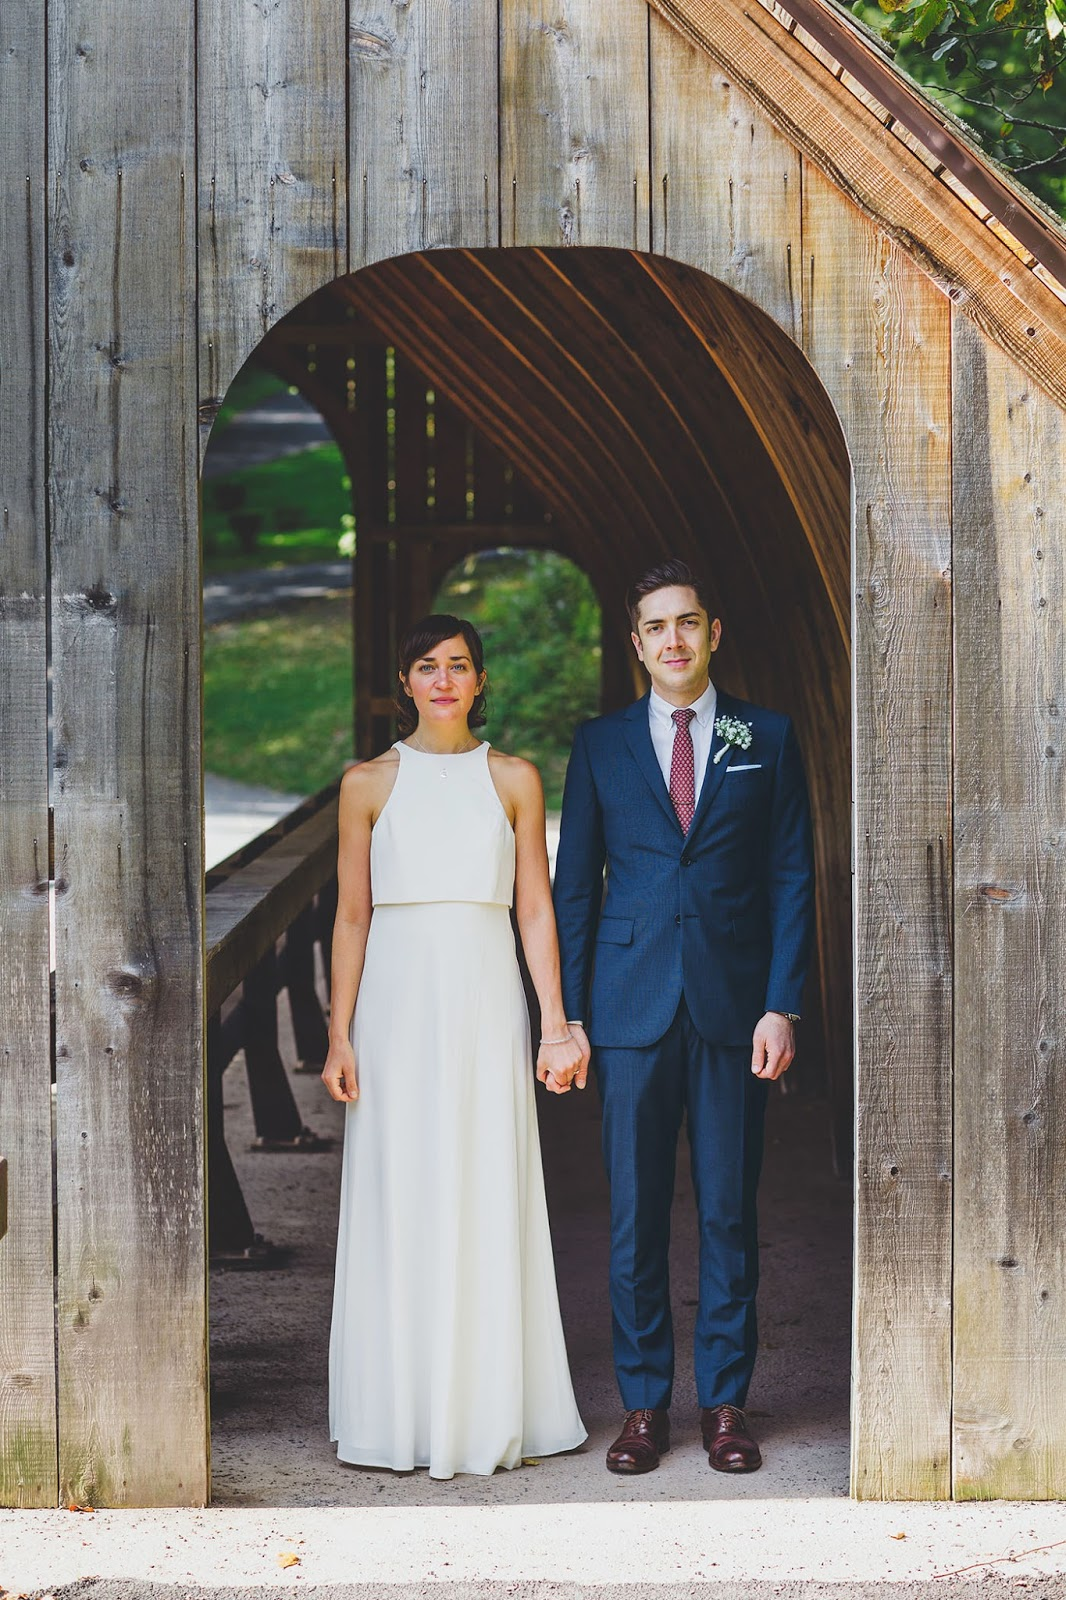 Upstate New York Wedding in Big Indian | blog.cassiecastellaw.com